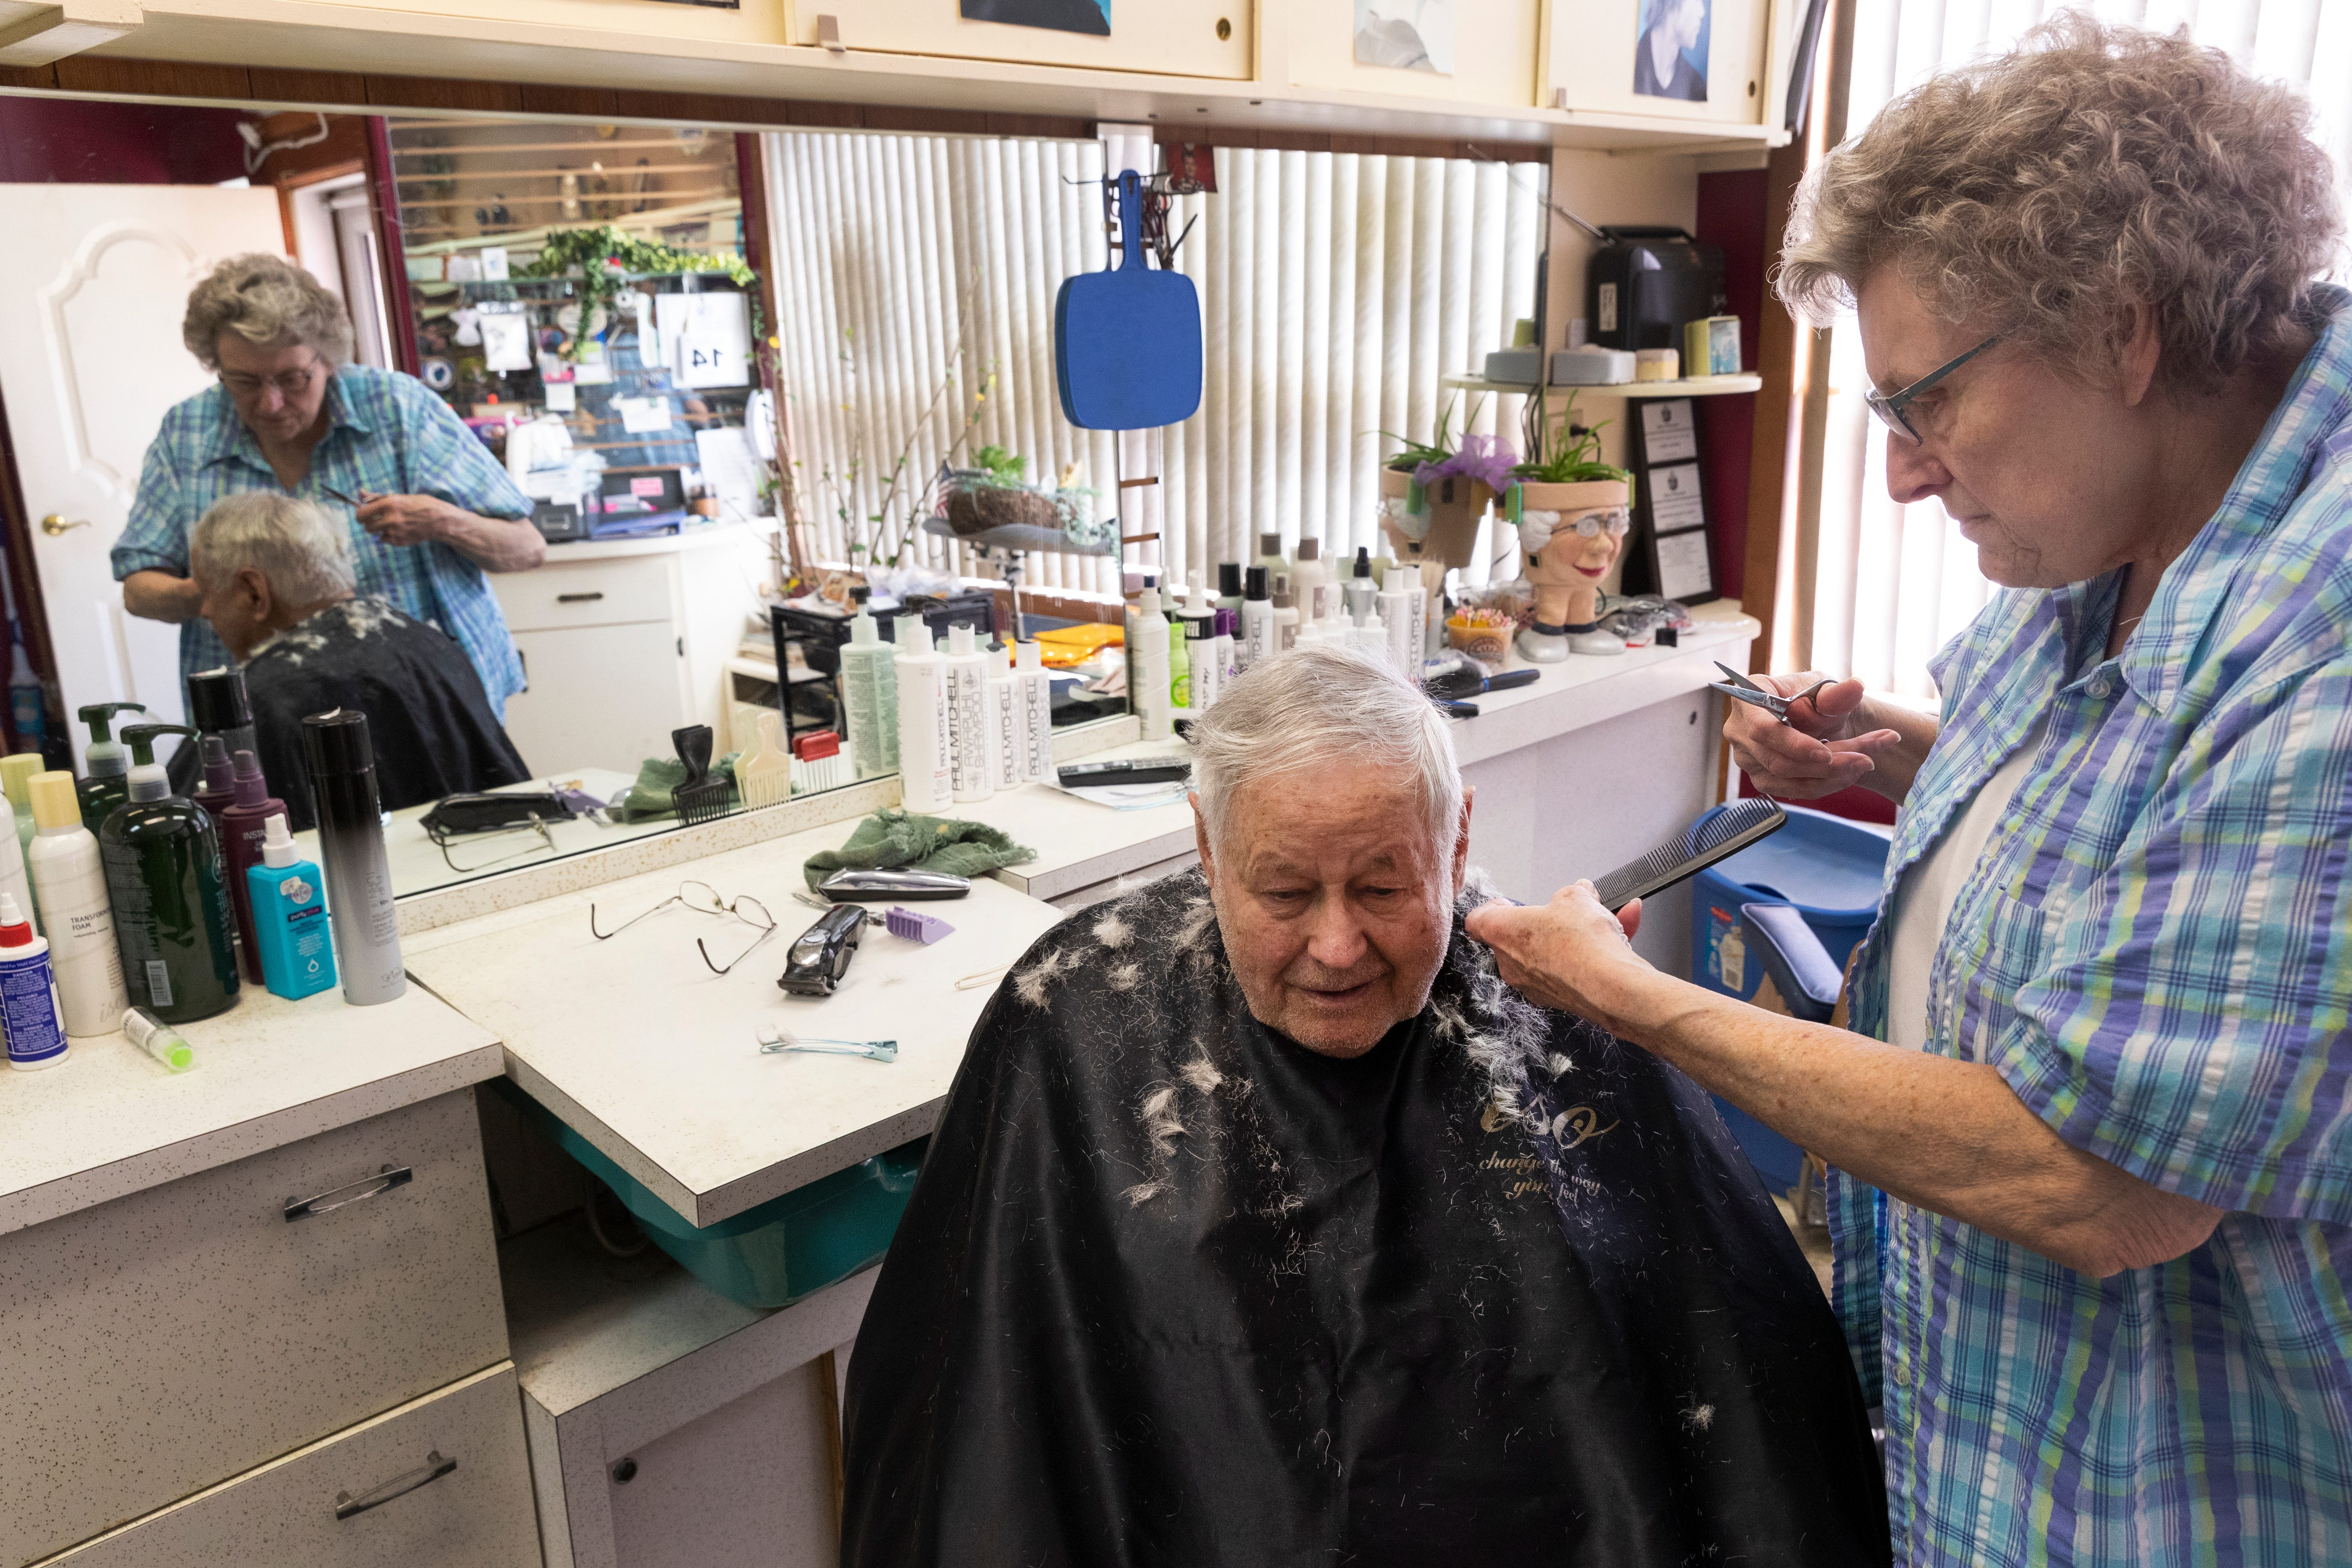 Carol Hubing gives longtime customer Franz Grossenbacher a haircut at her salon in Loyal on May 15. Grossenbacher was one of her first customers since the Wisconsin Supreme Court overruled business restrictions put into place by Gov. Tony Evers. Clark County has a population of about 35,000 people and about 166,000 dairy cattle.